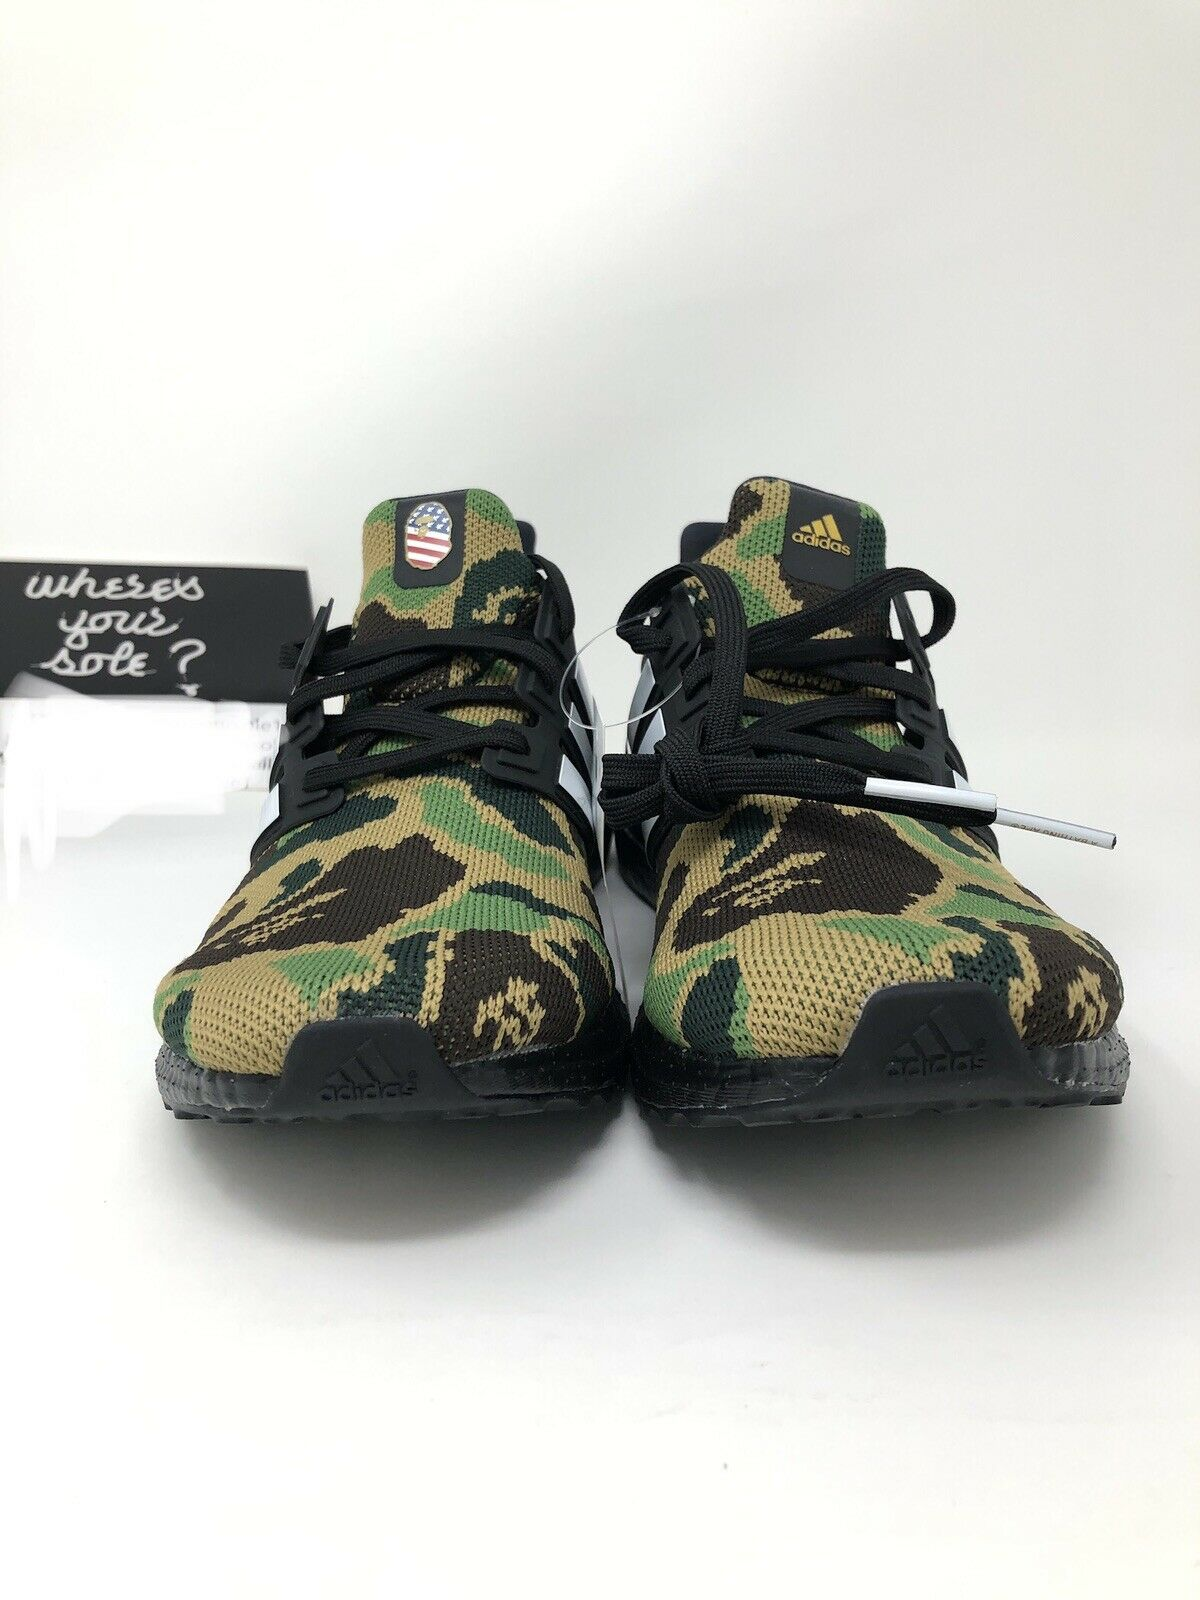 7ba9db063ca Adidas Bape Ultra Boost size 9.5 A Bathing Ape Superbowl SB UB 4.0 NEW  F35097 DS